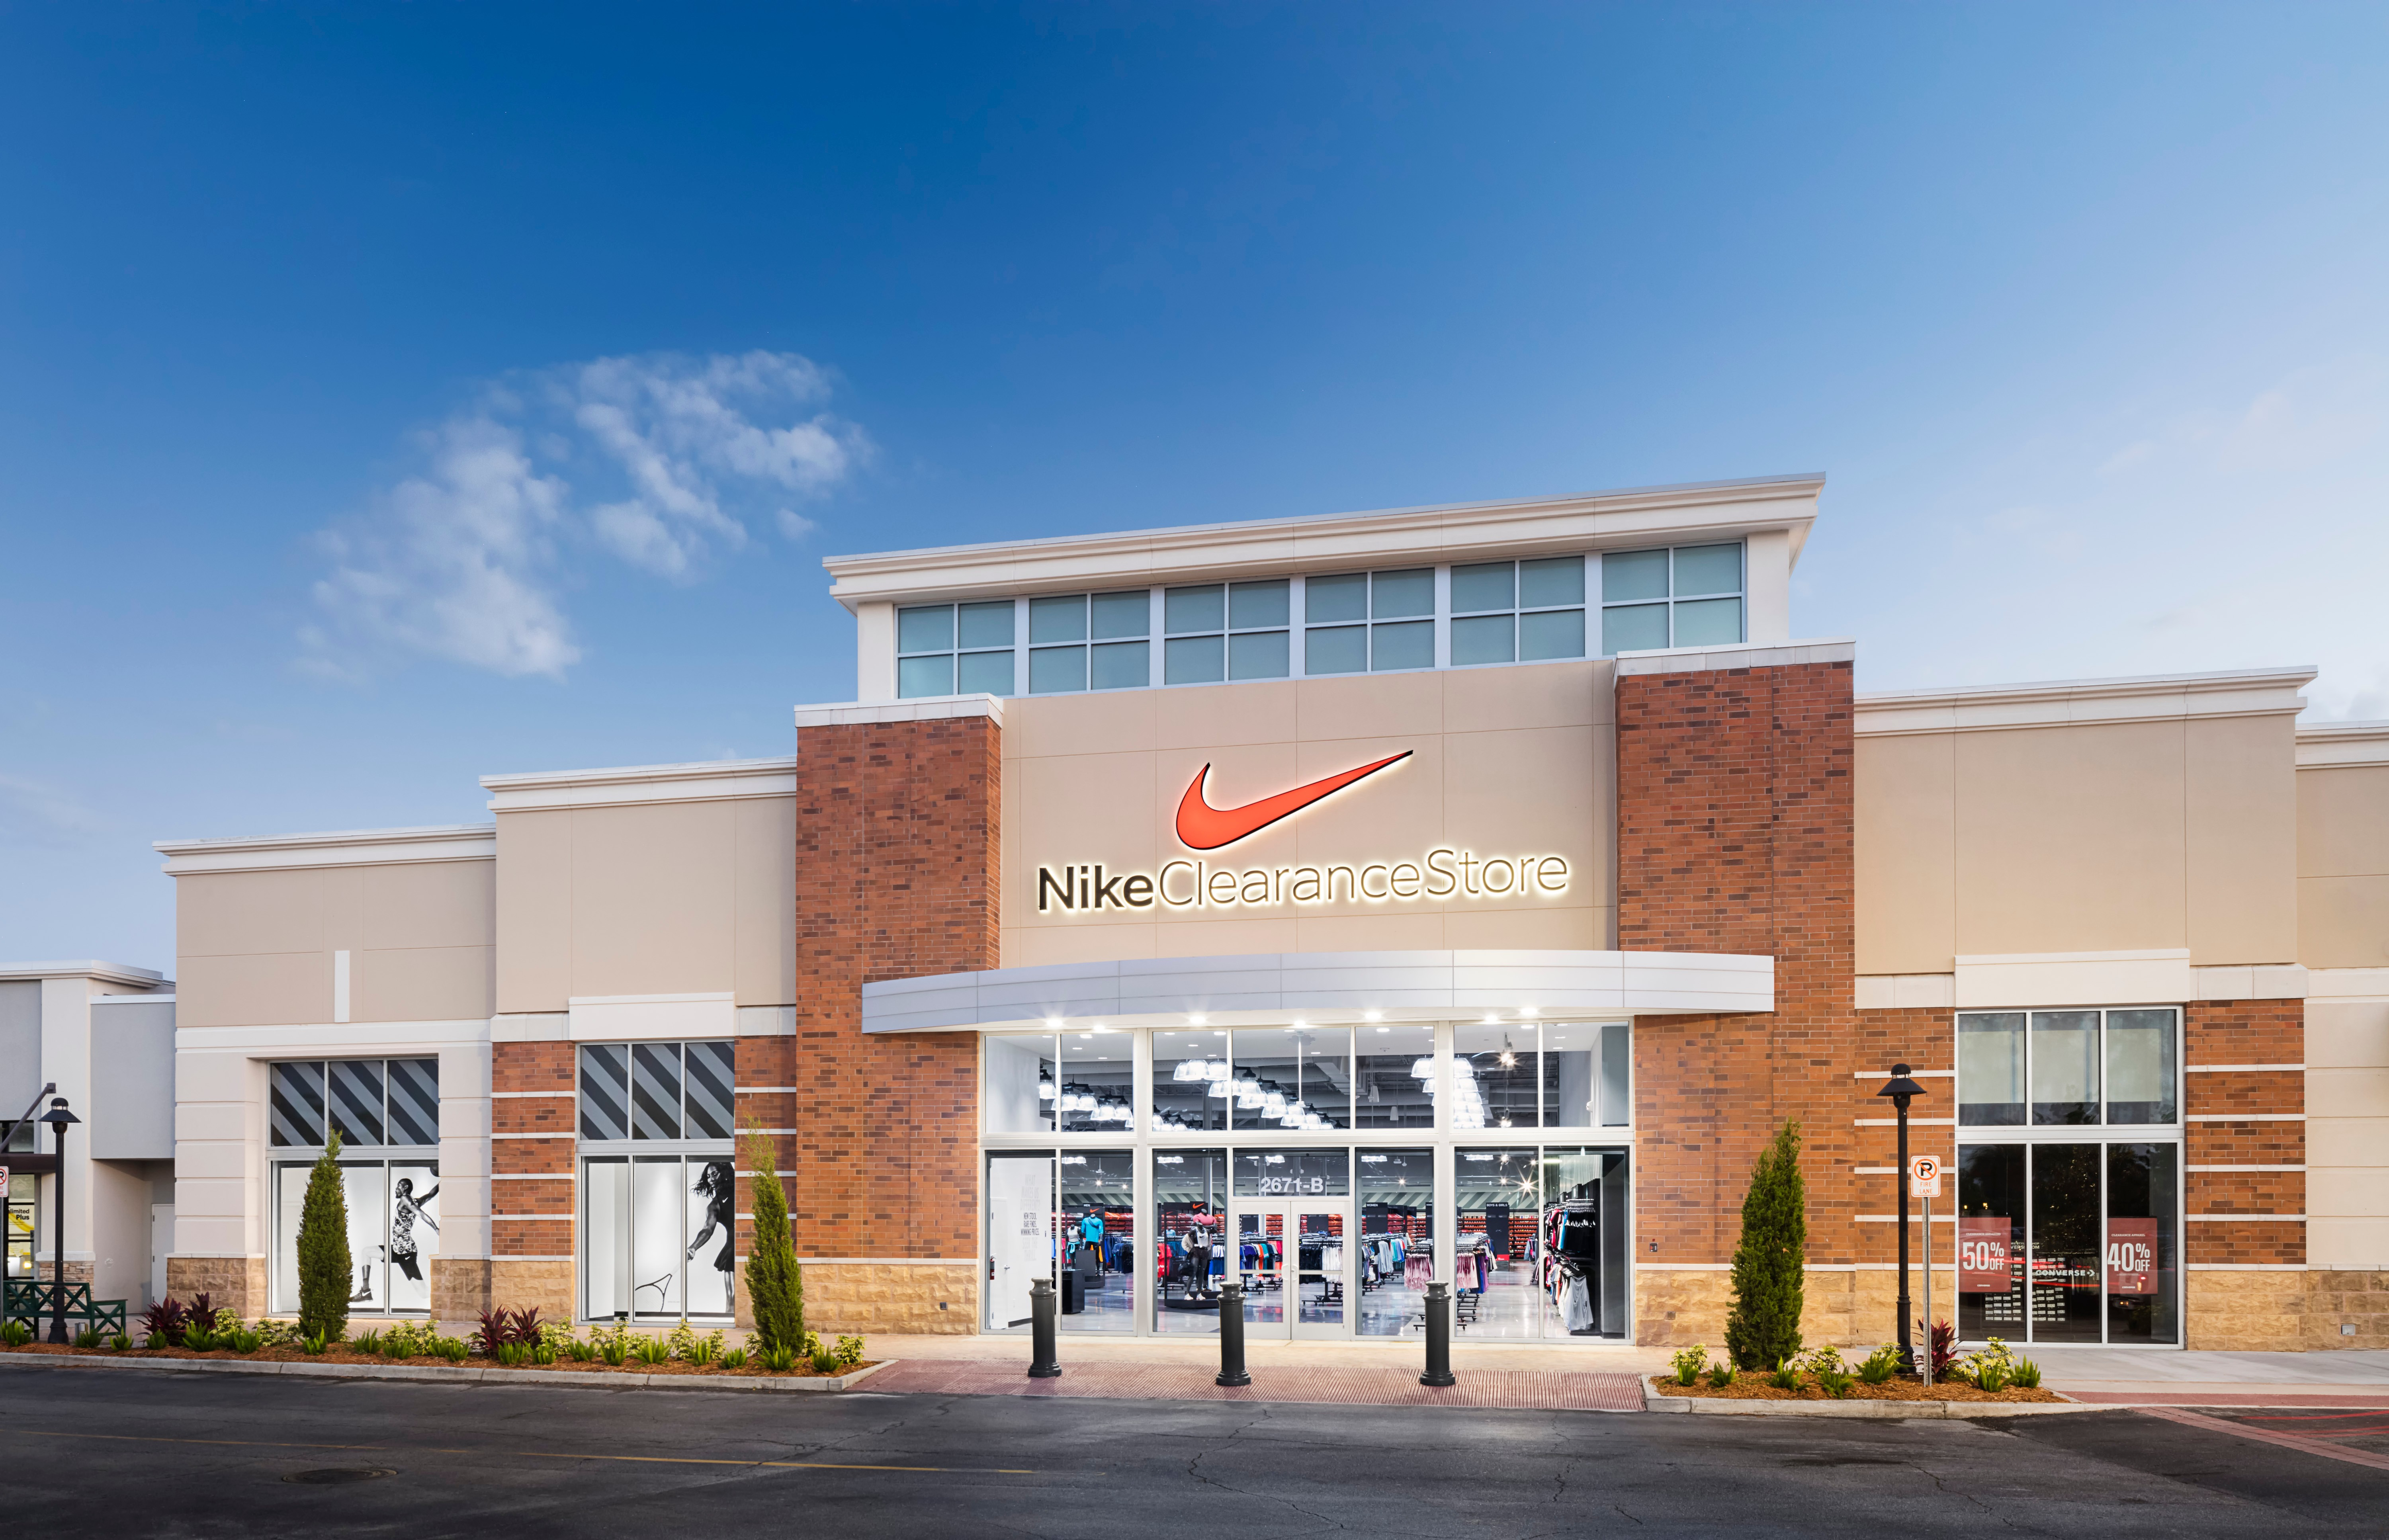 Nike Clearance Store Home | Facebook